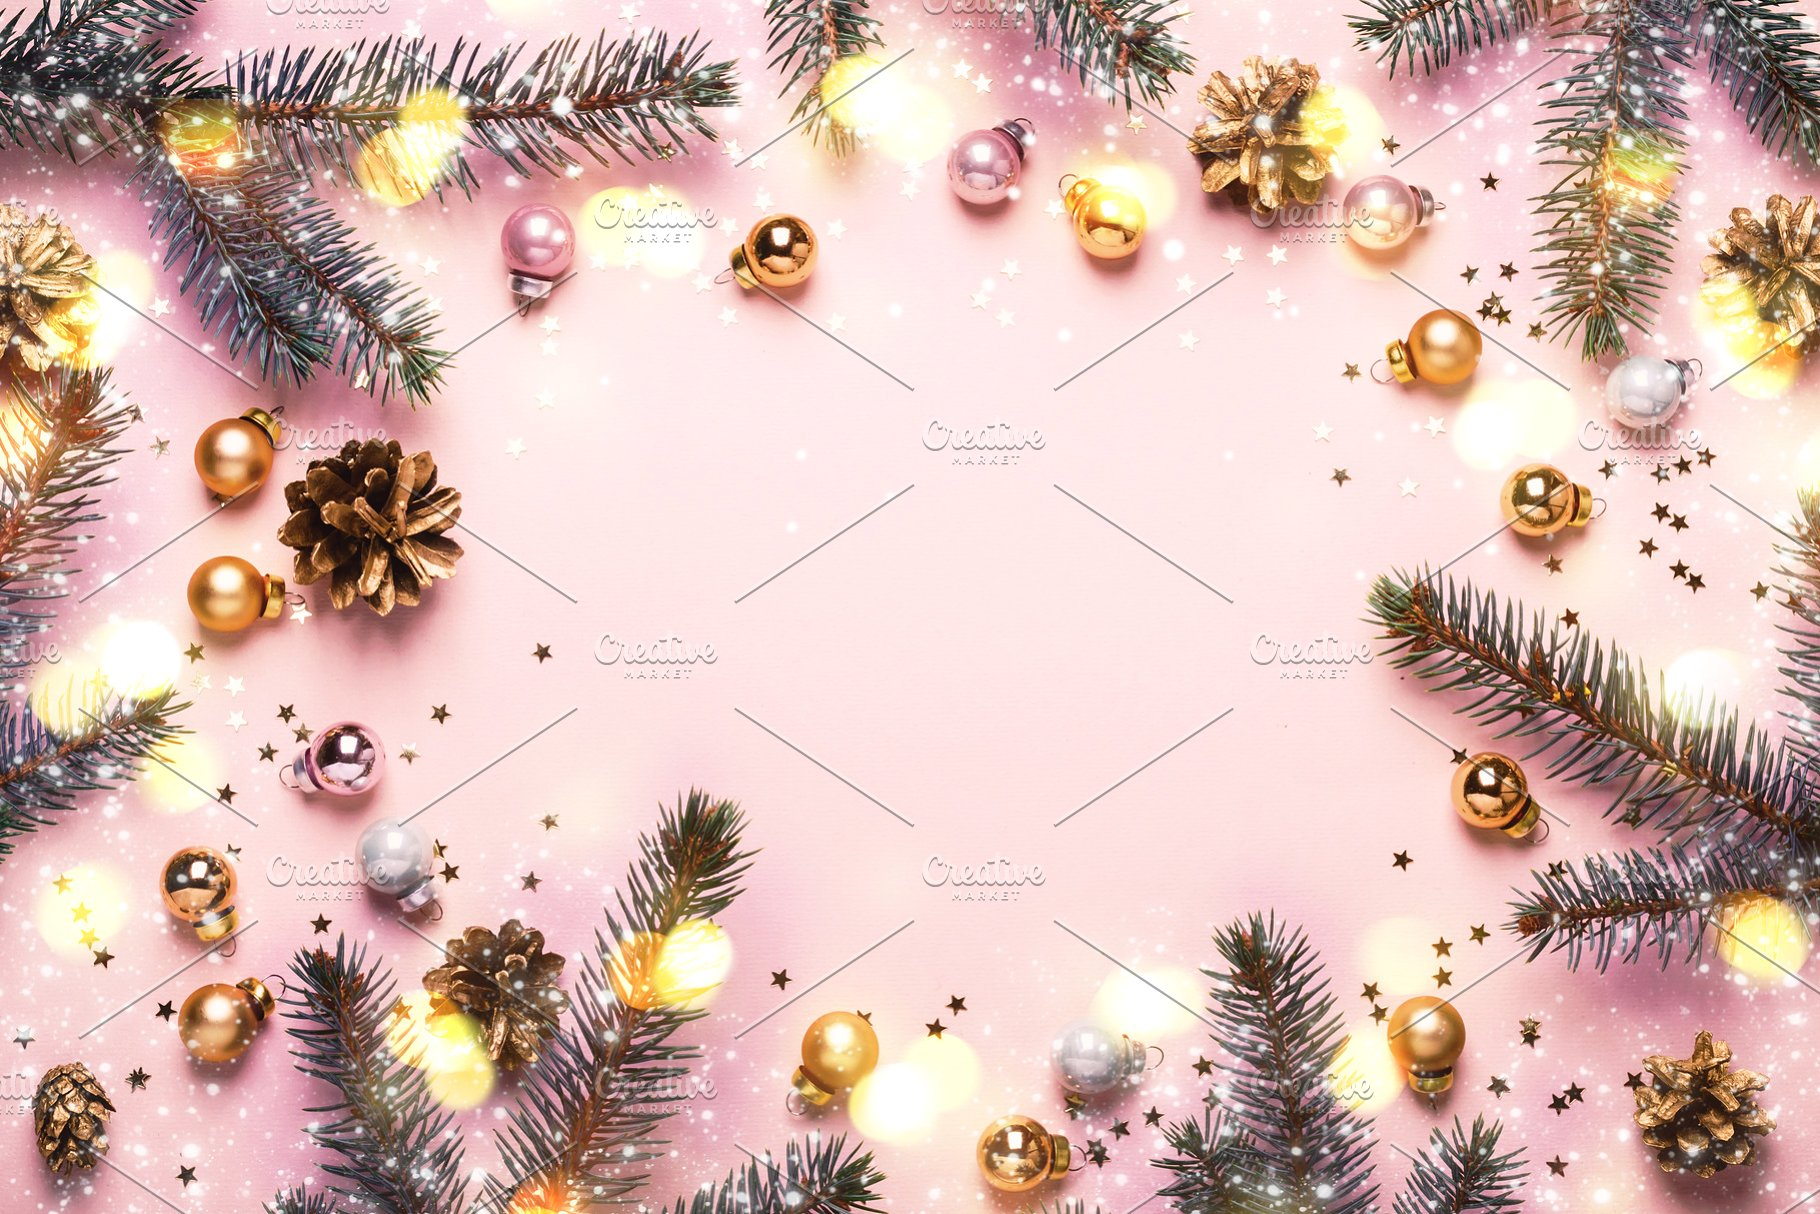 Pastel Pink Christmas Background Fe Holiday Photos Creative 1820x1214